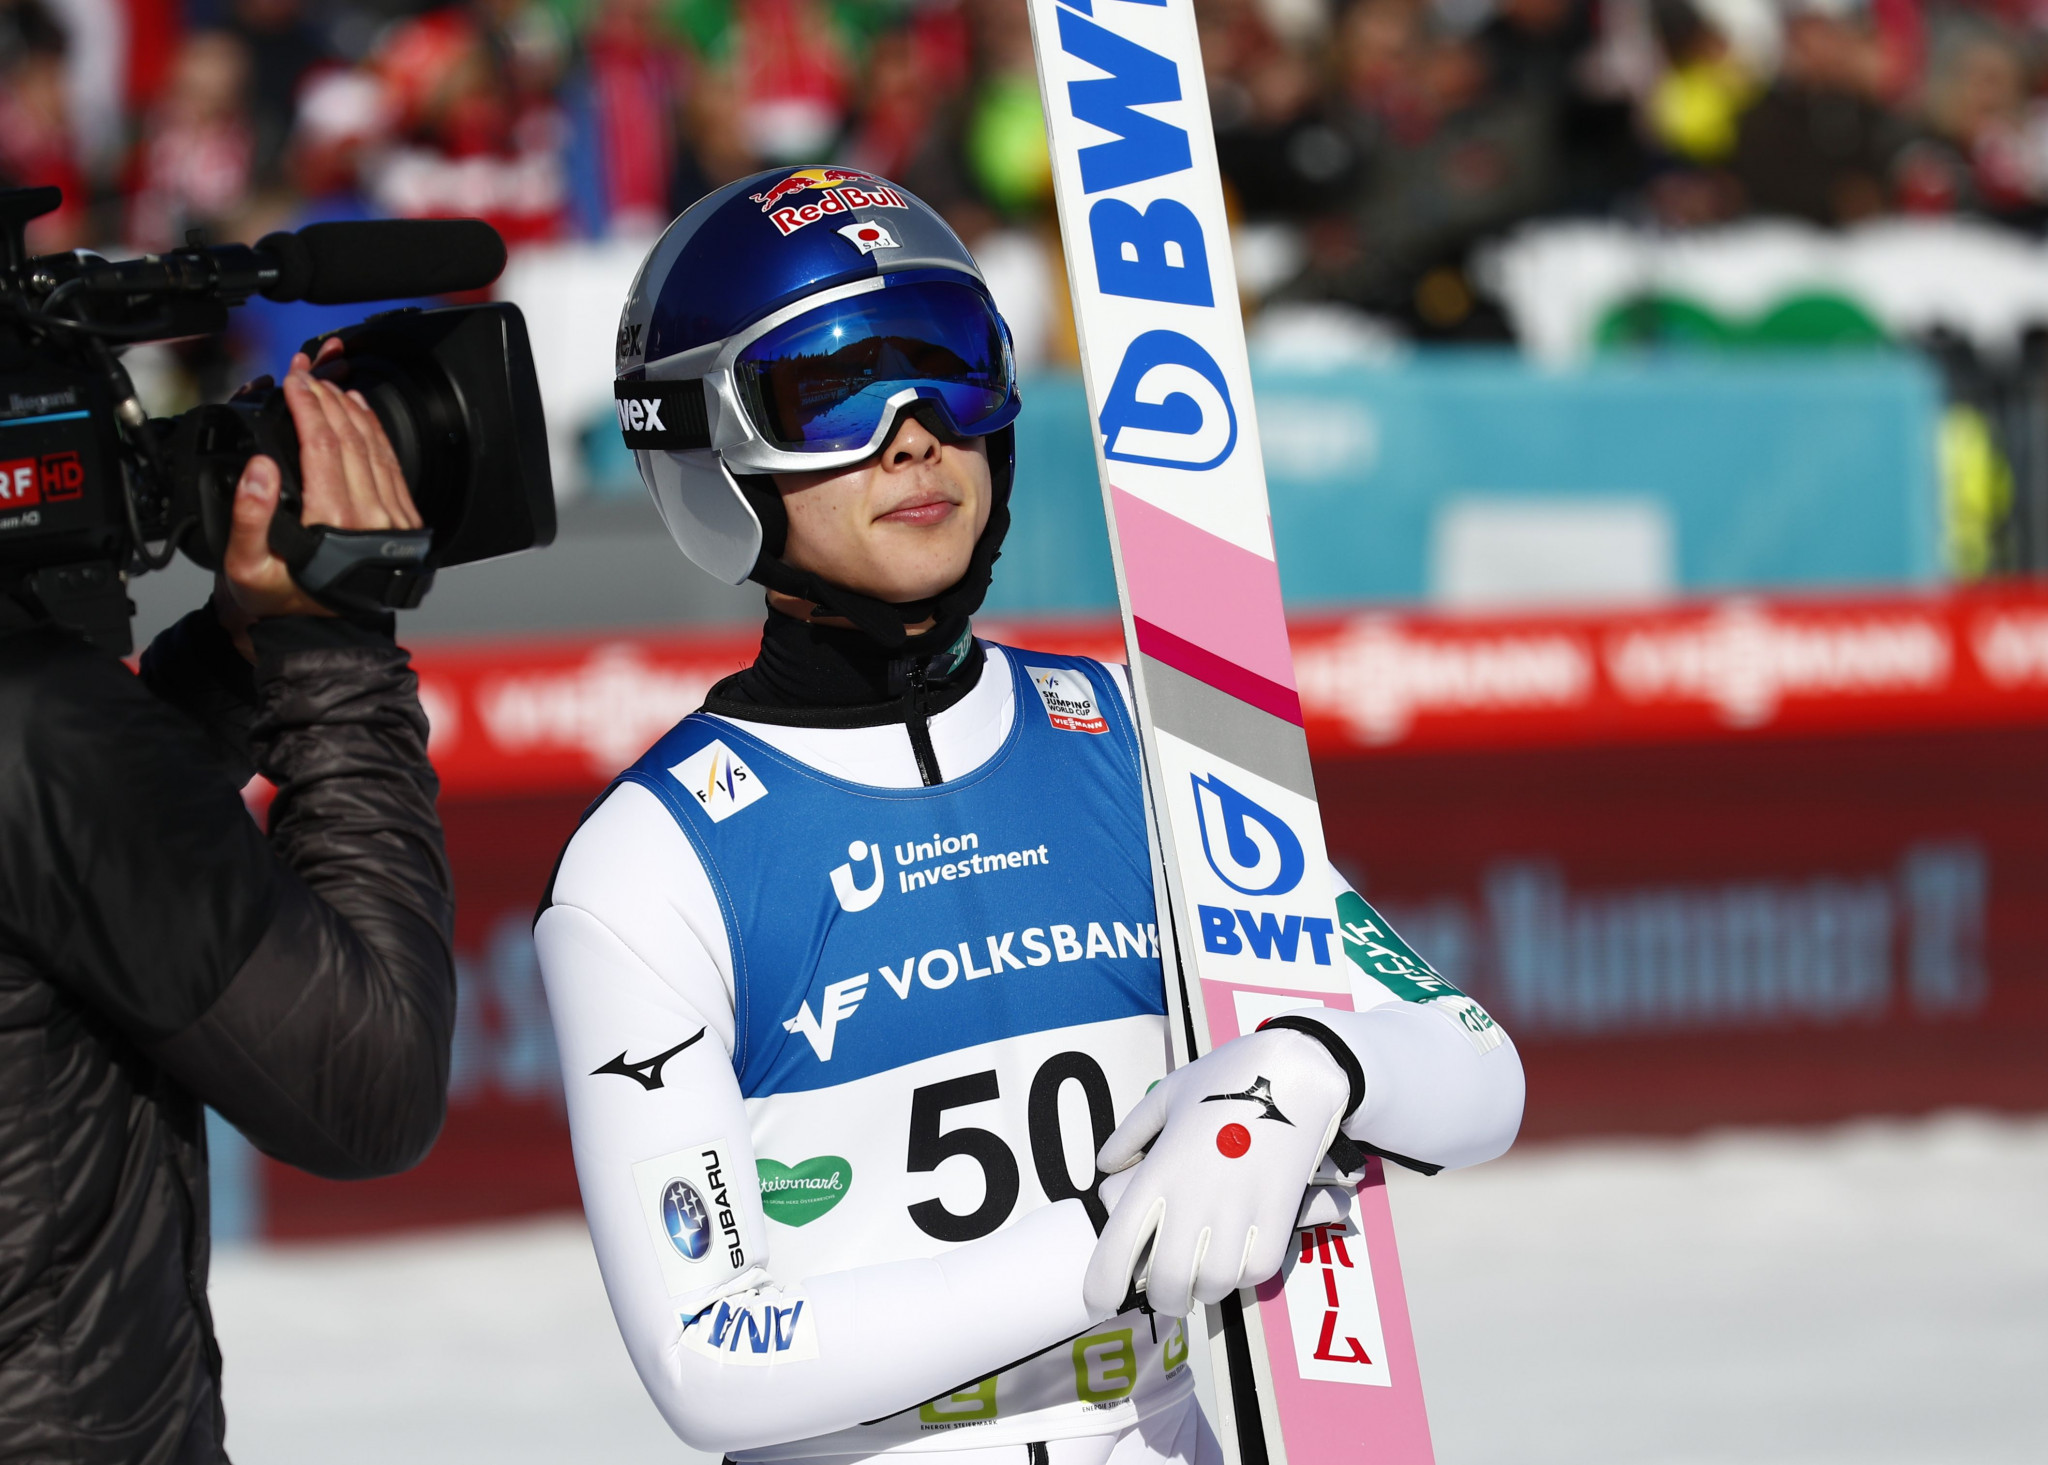 After a disappointing first day, Japan's Ryōyū Kobayashi returned to the podium with a silver medal behind Stefan Kraft ©Getty Images